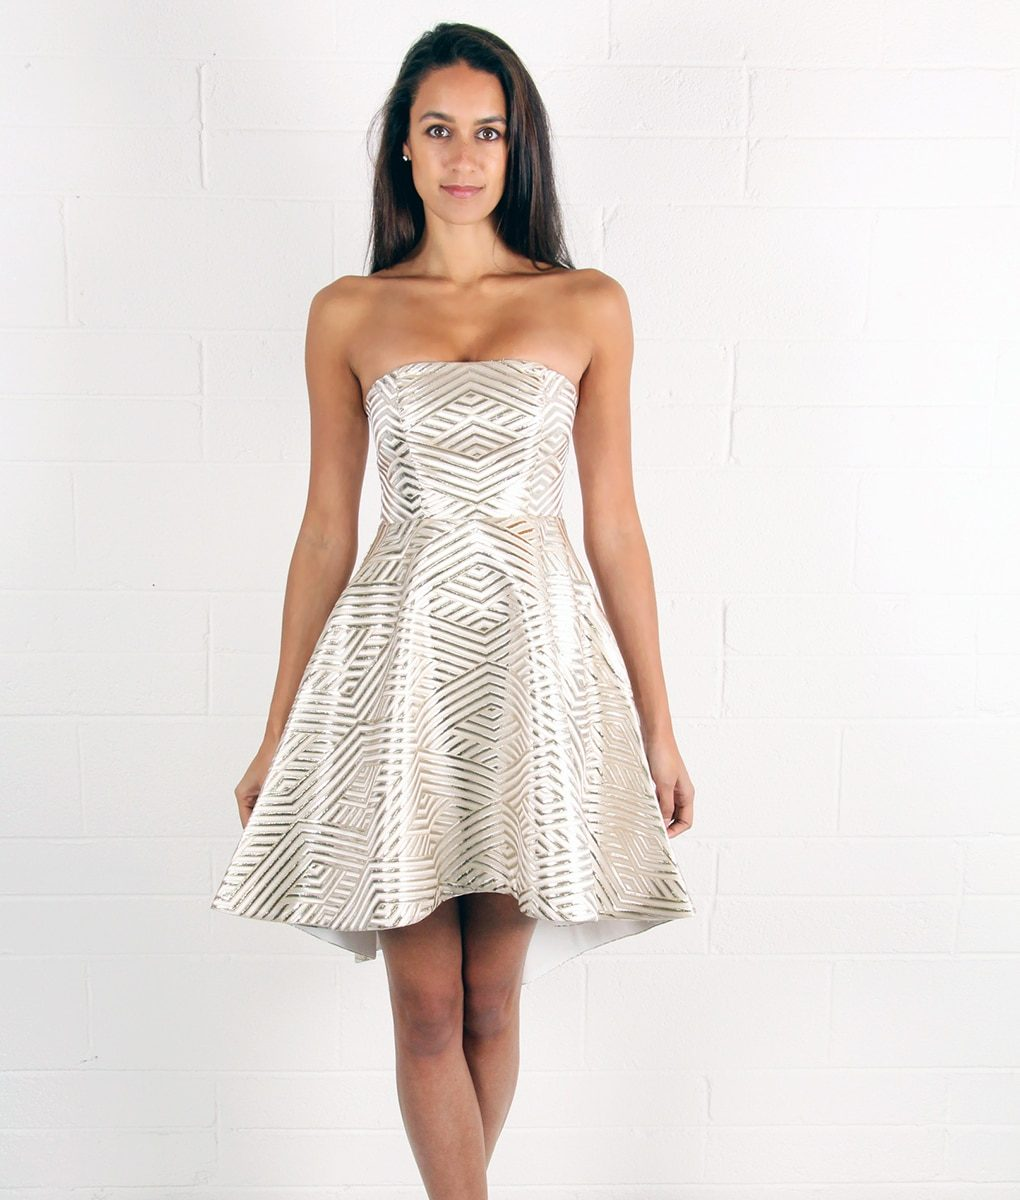 b886855c2fa1 Alila White and Gold Strapless Dress by Lumier by Bariano